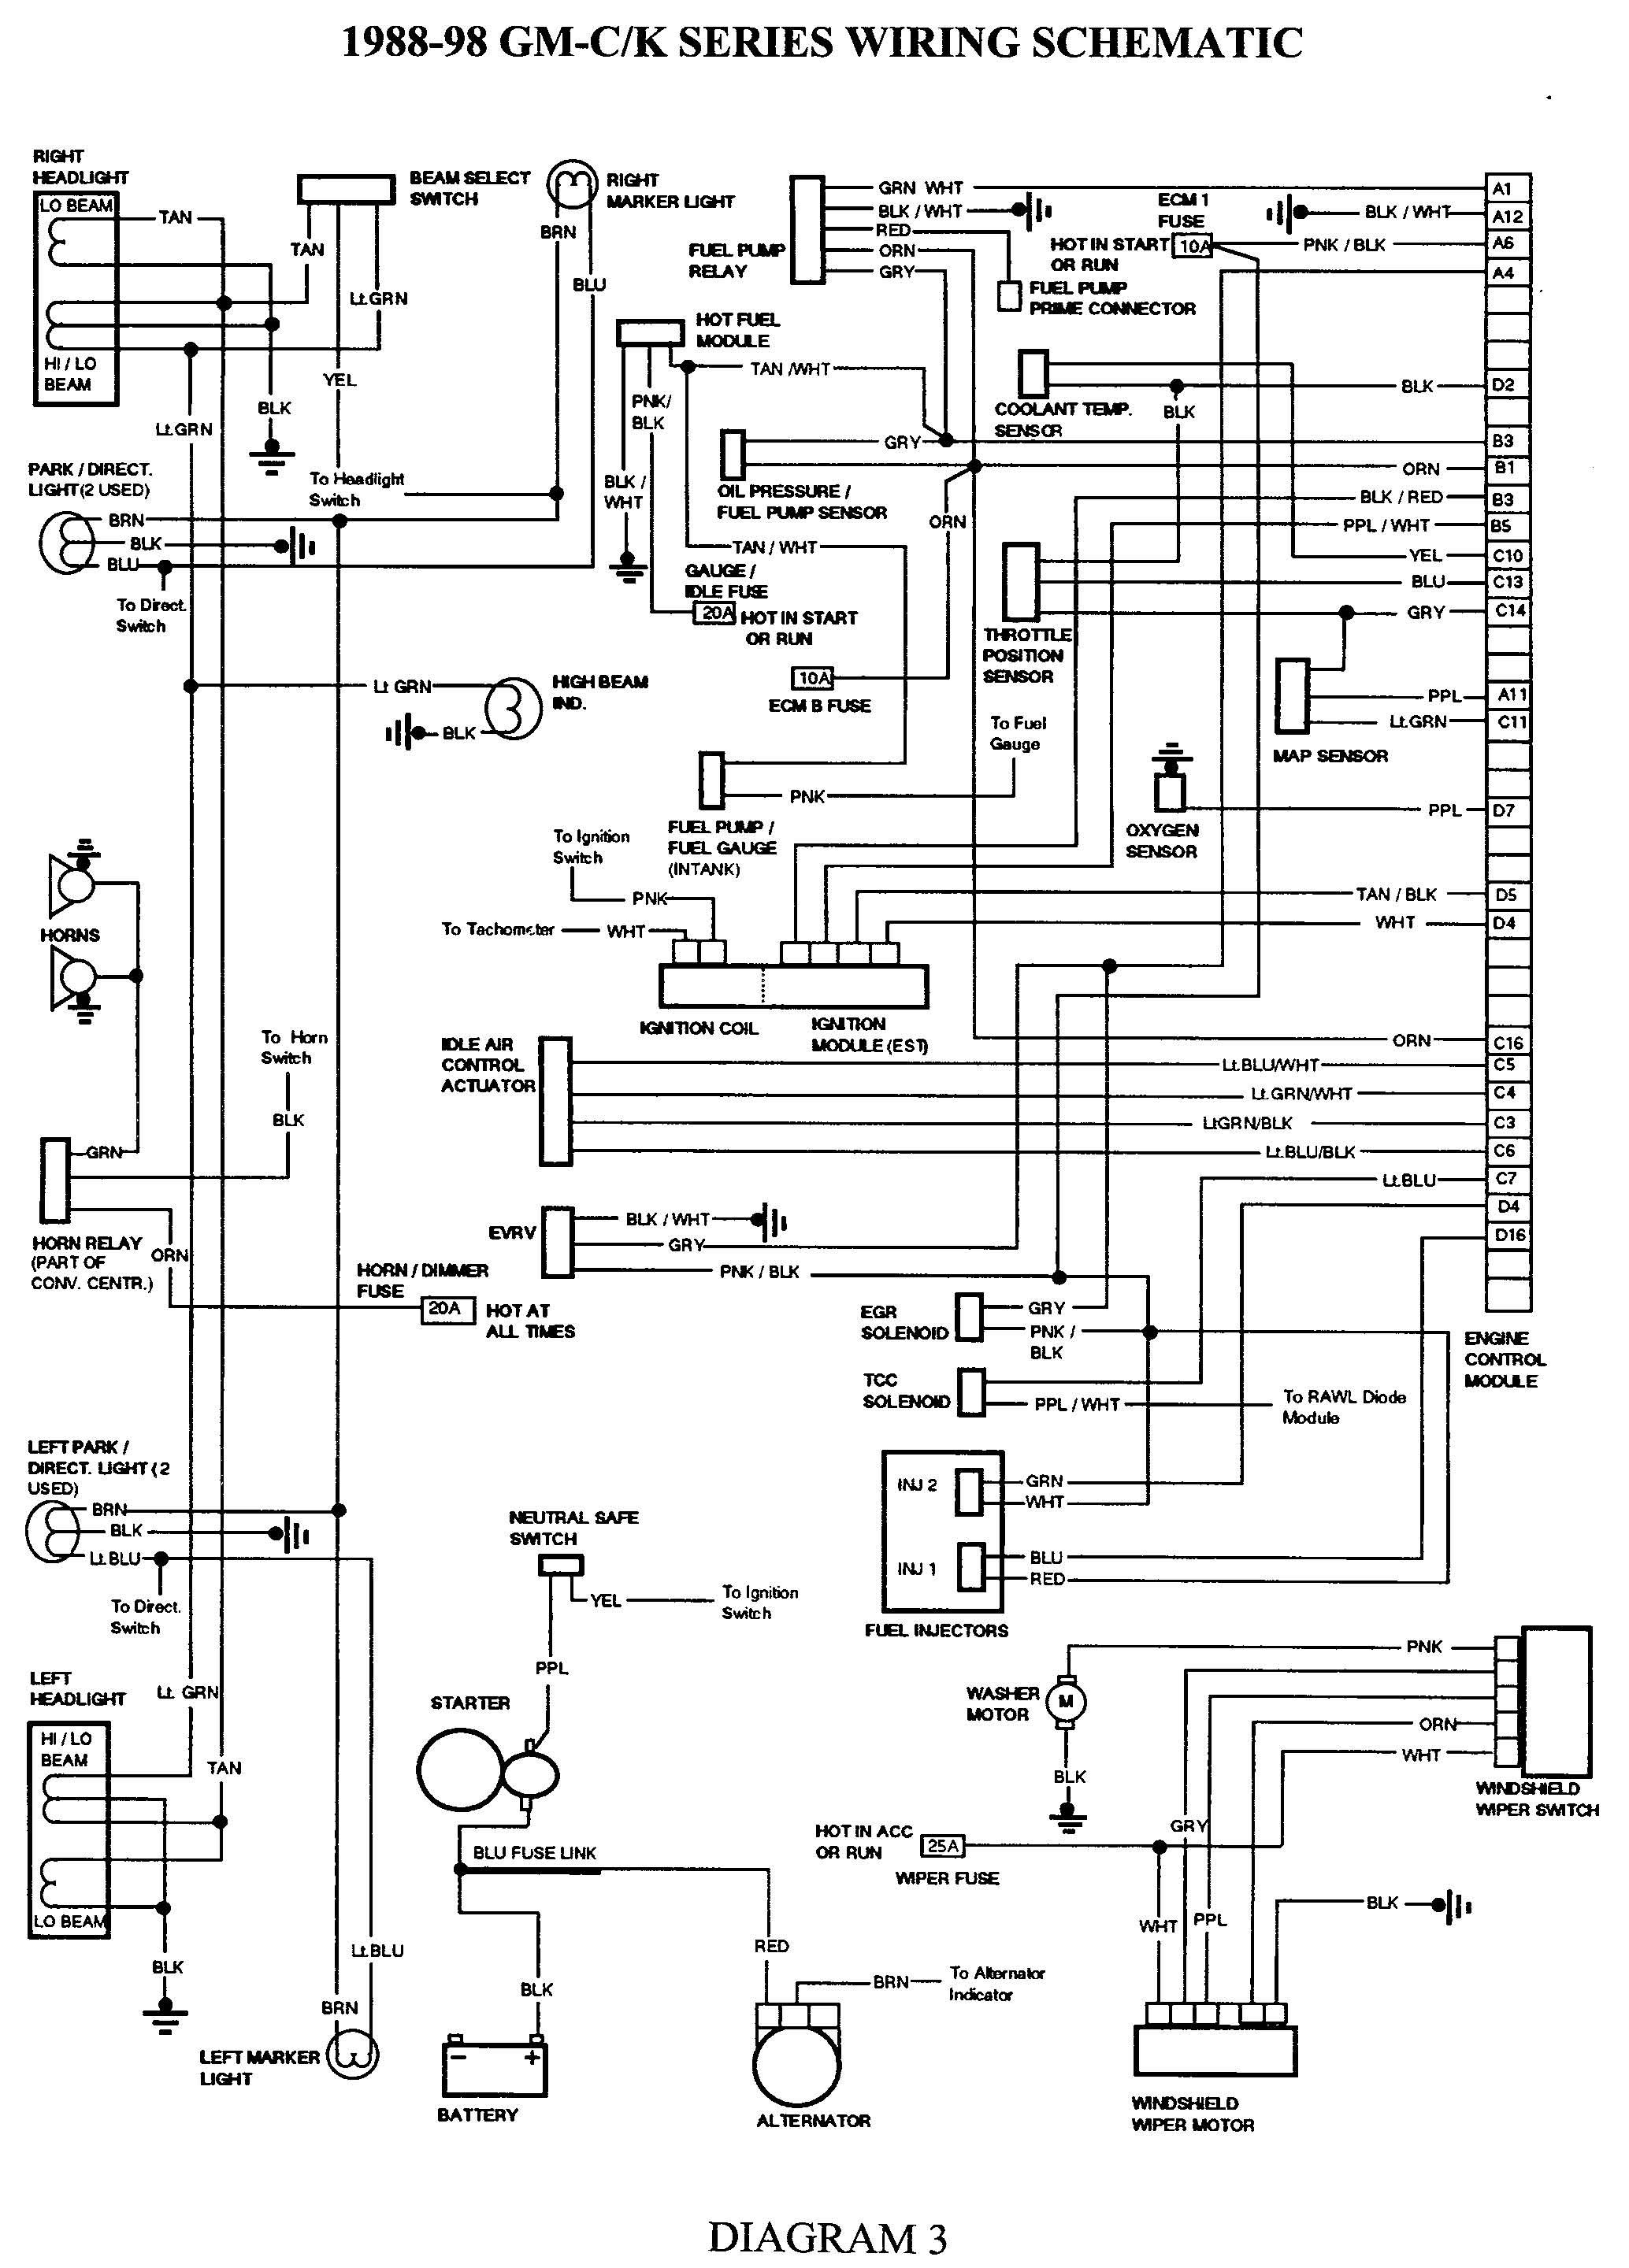 1993 gmc truck wiring diagram illustration of wiring diagram u2022 rh davisfamilyreunion us 1995 chevy k3500 wiring diagram 1995 chevy k3500 wiring diagram